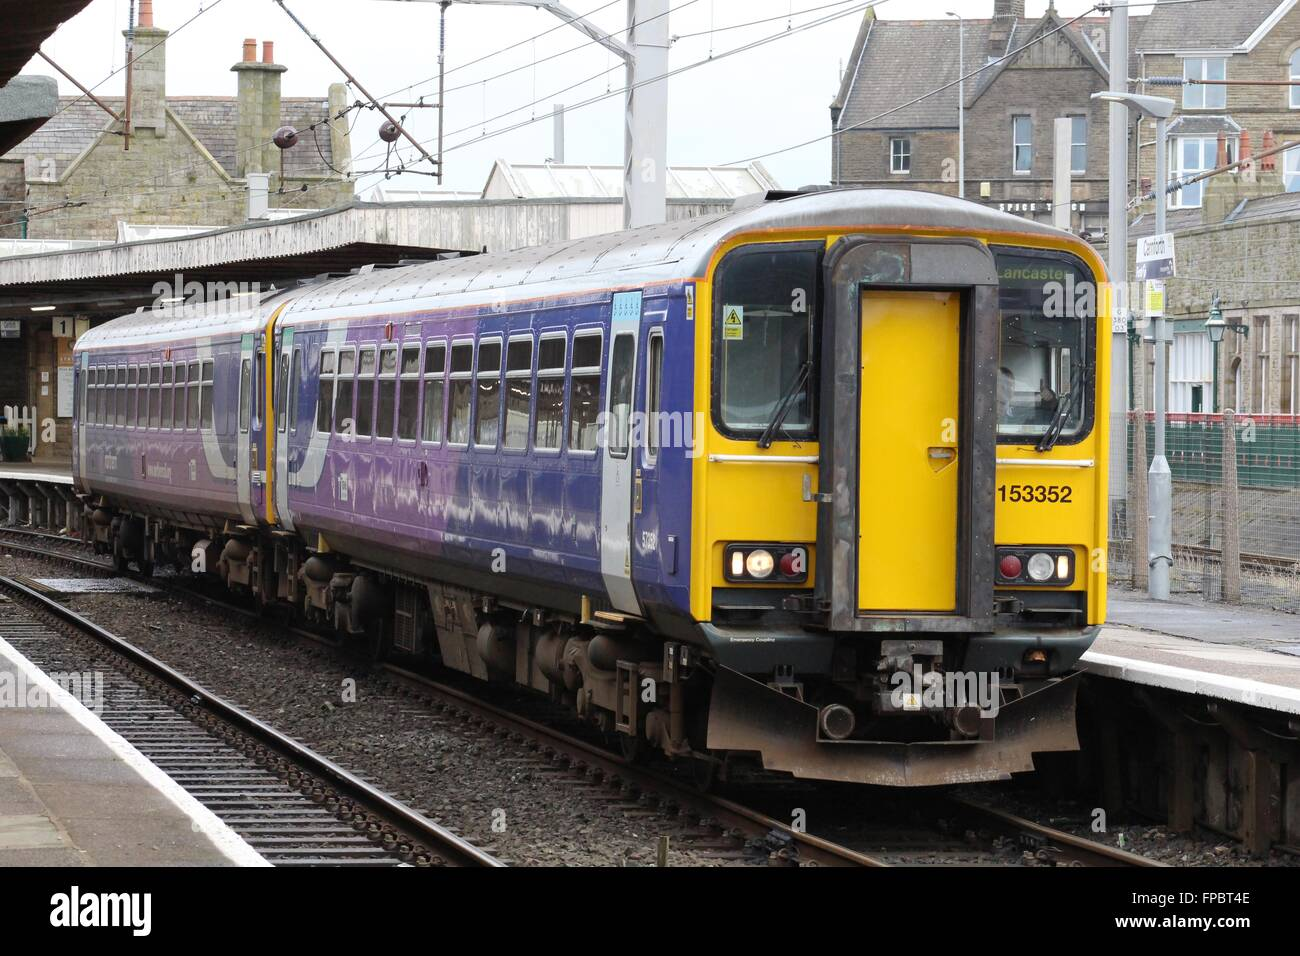 Two class 153 diesel unit in Northern livery on a passenger train leaving Carnforth railway station platform 1. - Stock Image